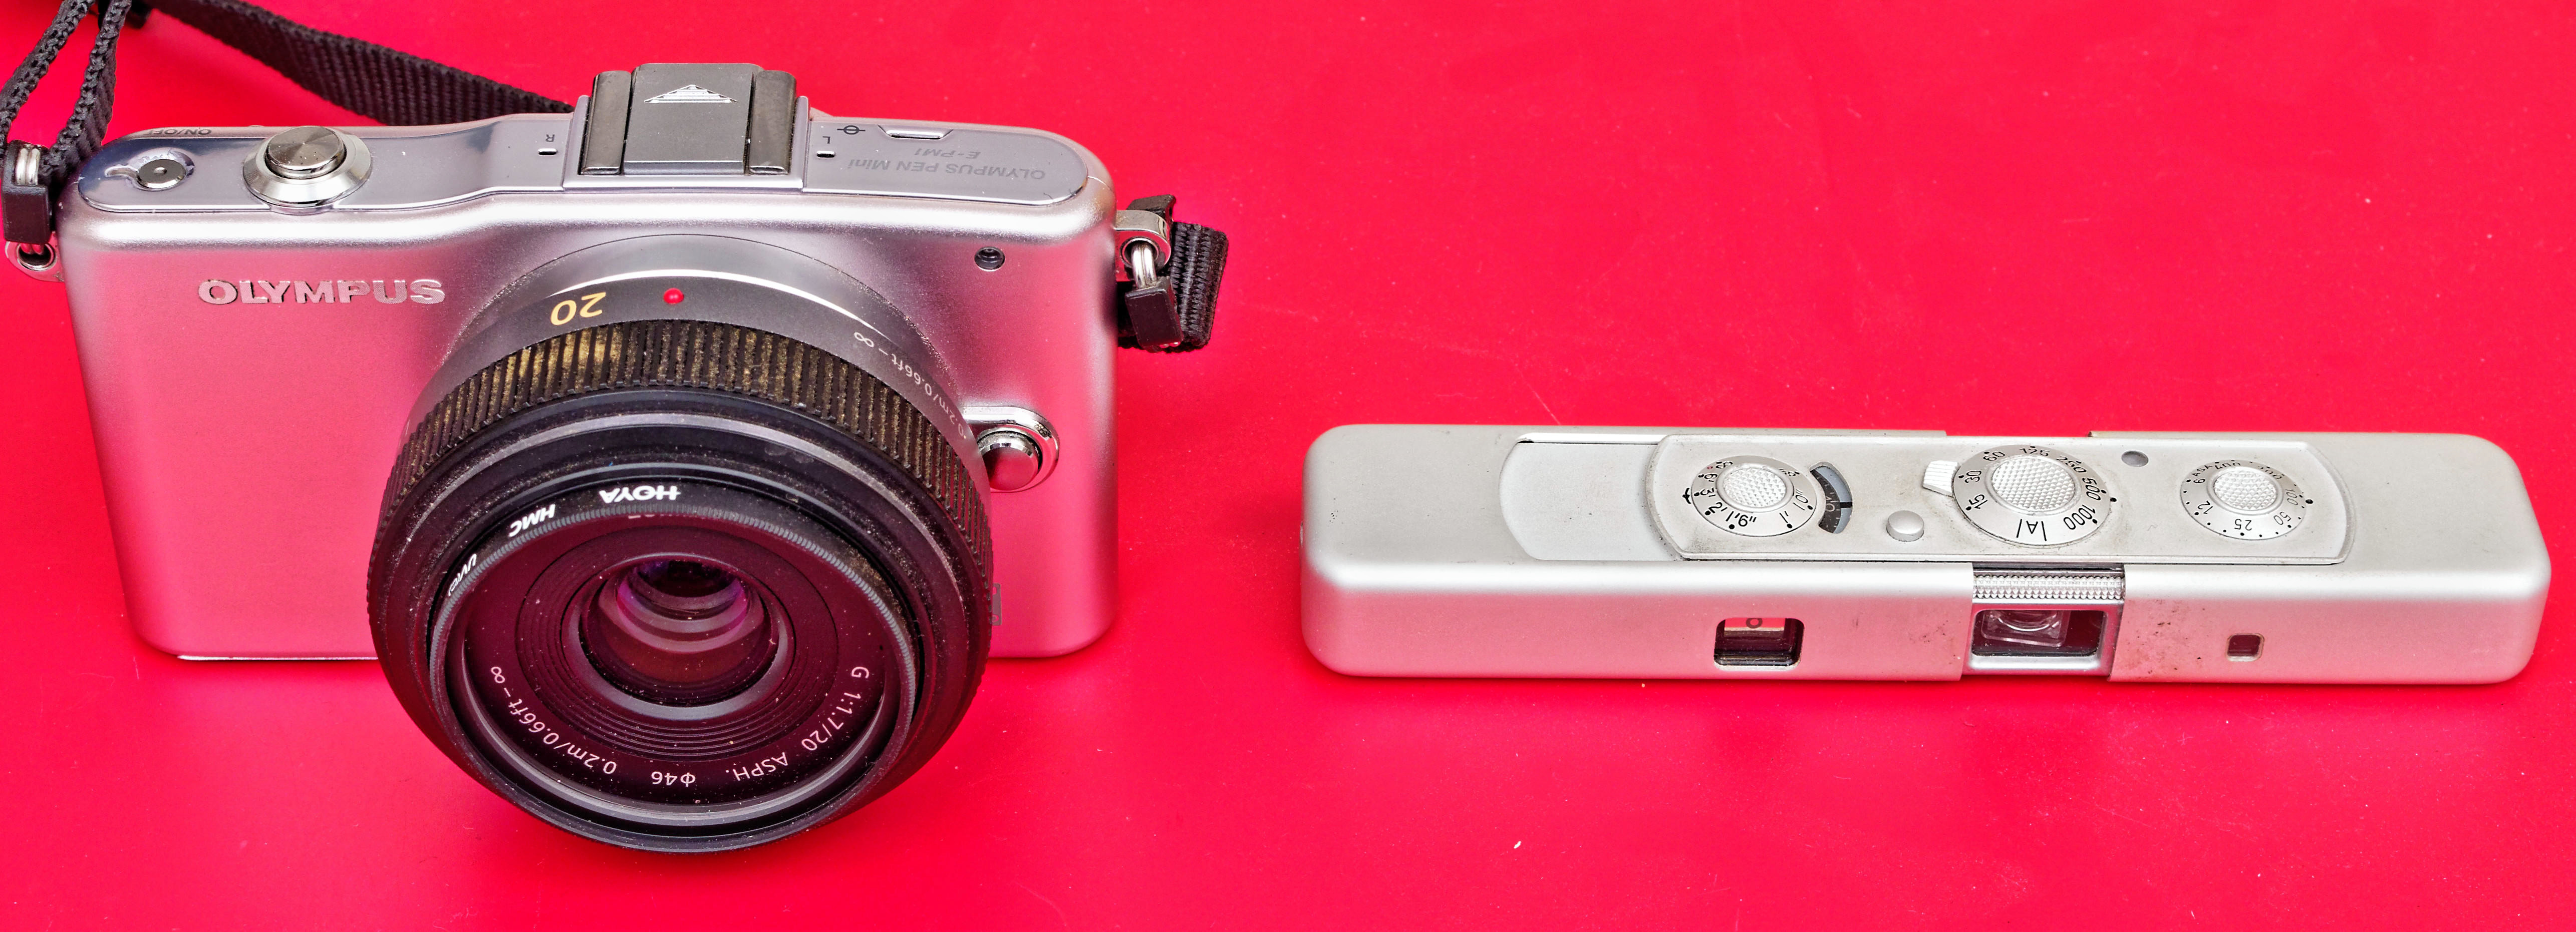 This should be Olympus-Minox-1.jpeg.  Is it missing?